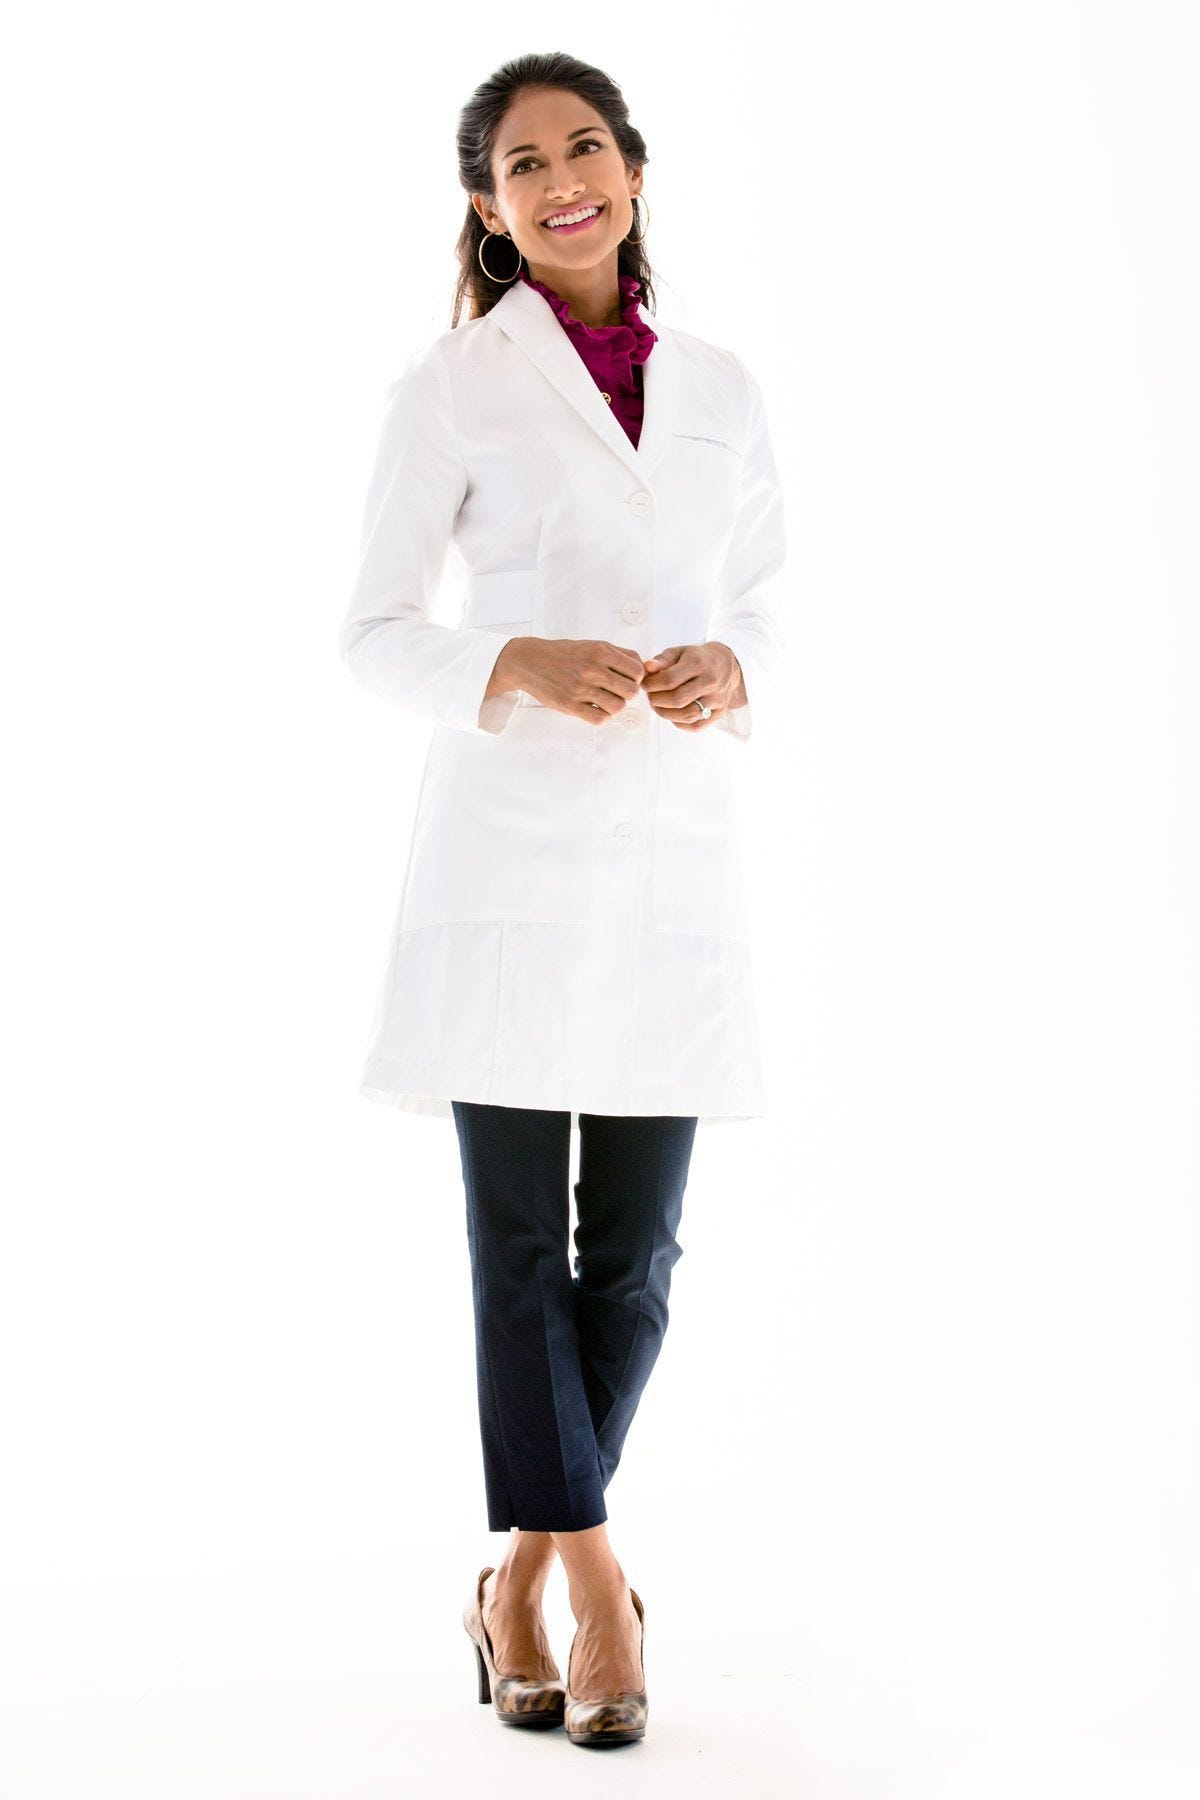 Professional Women's Lab Coats | Free Shipping & Returns